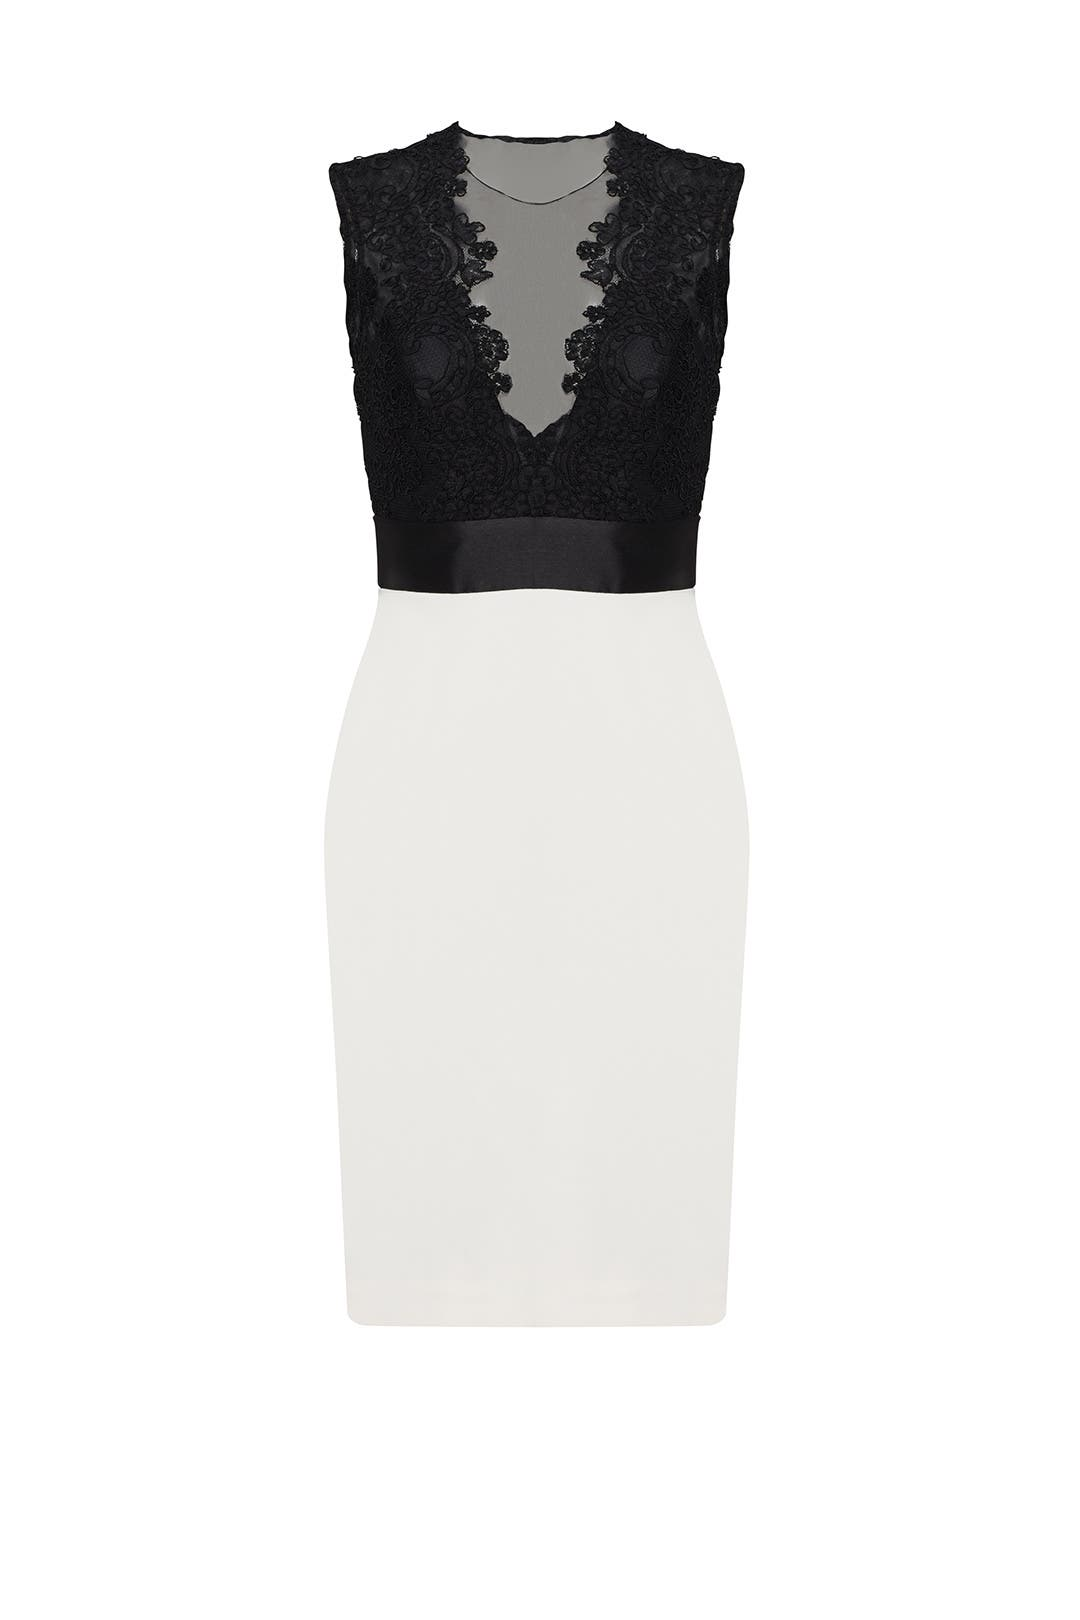 Black and White Midnight Sheath by Theia for $100 - $110 | Rent the ...